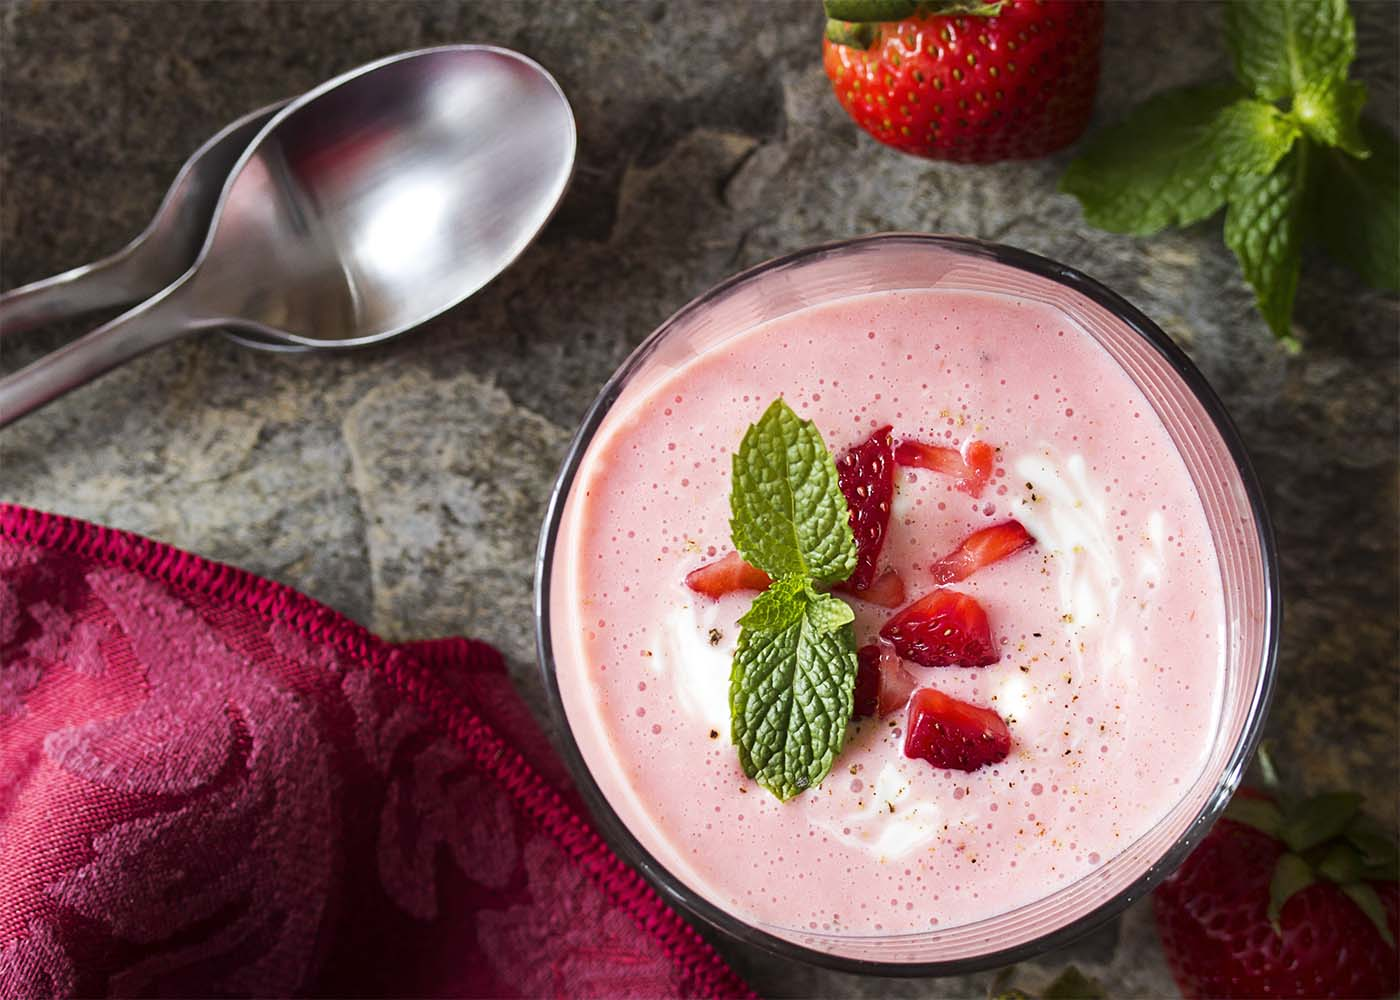 Close up view of a glass cup of strawberry soup with strawberries and spoons scattered about the table.